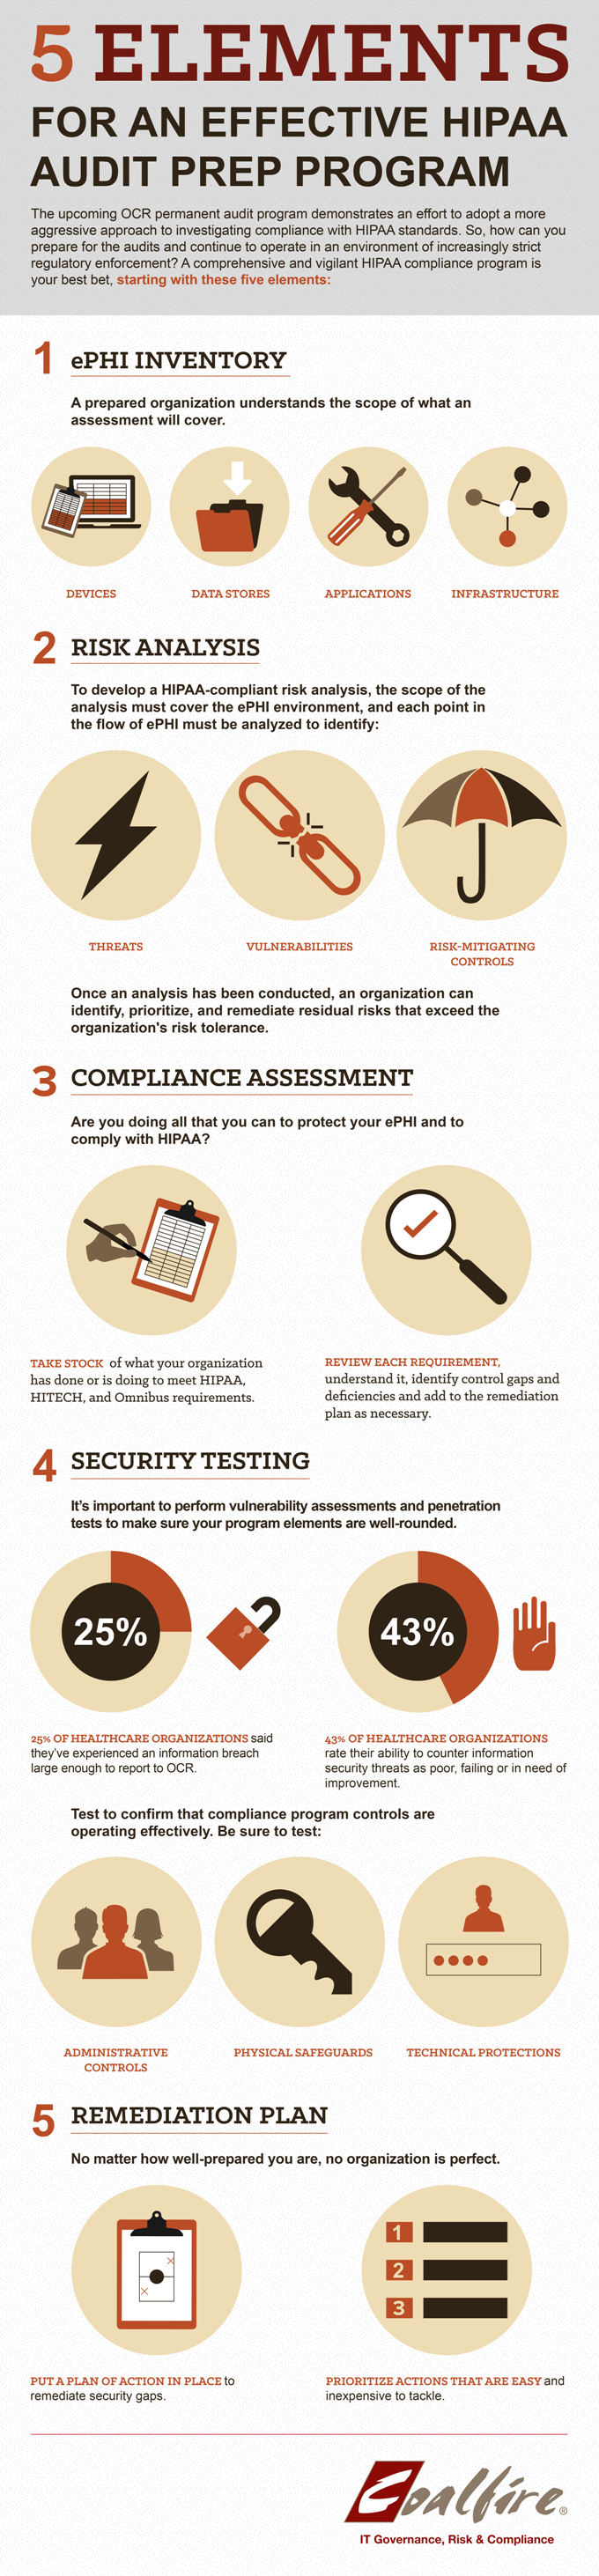 5 Elements of an Effective HIPAA Audit Program